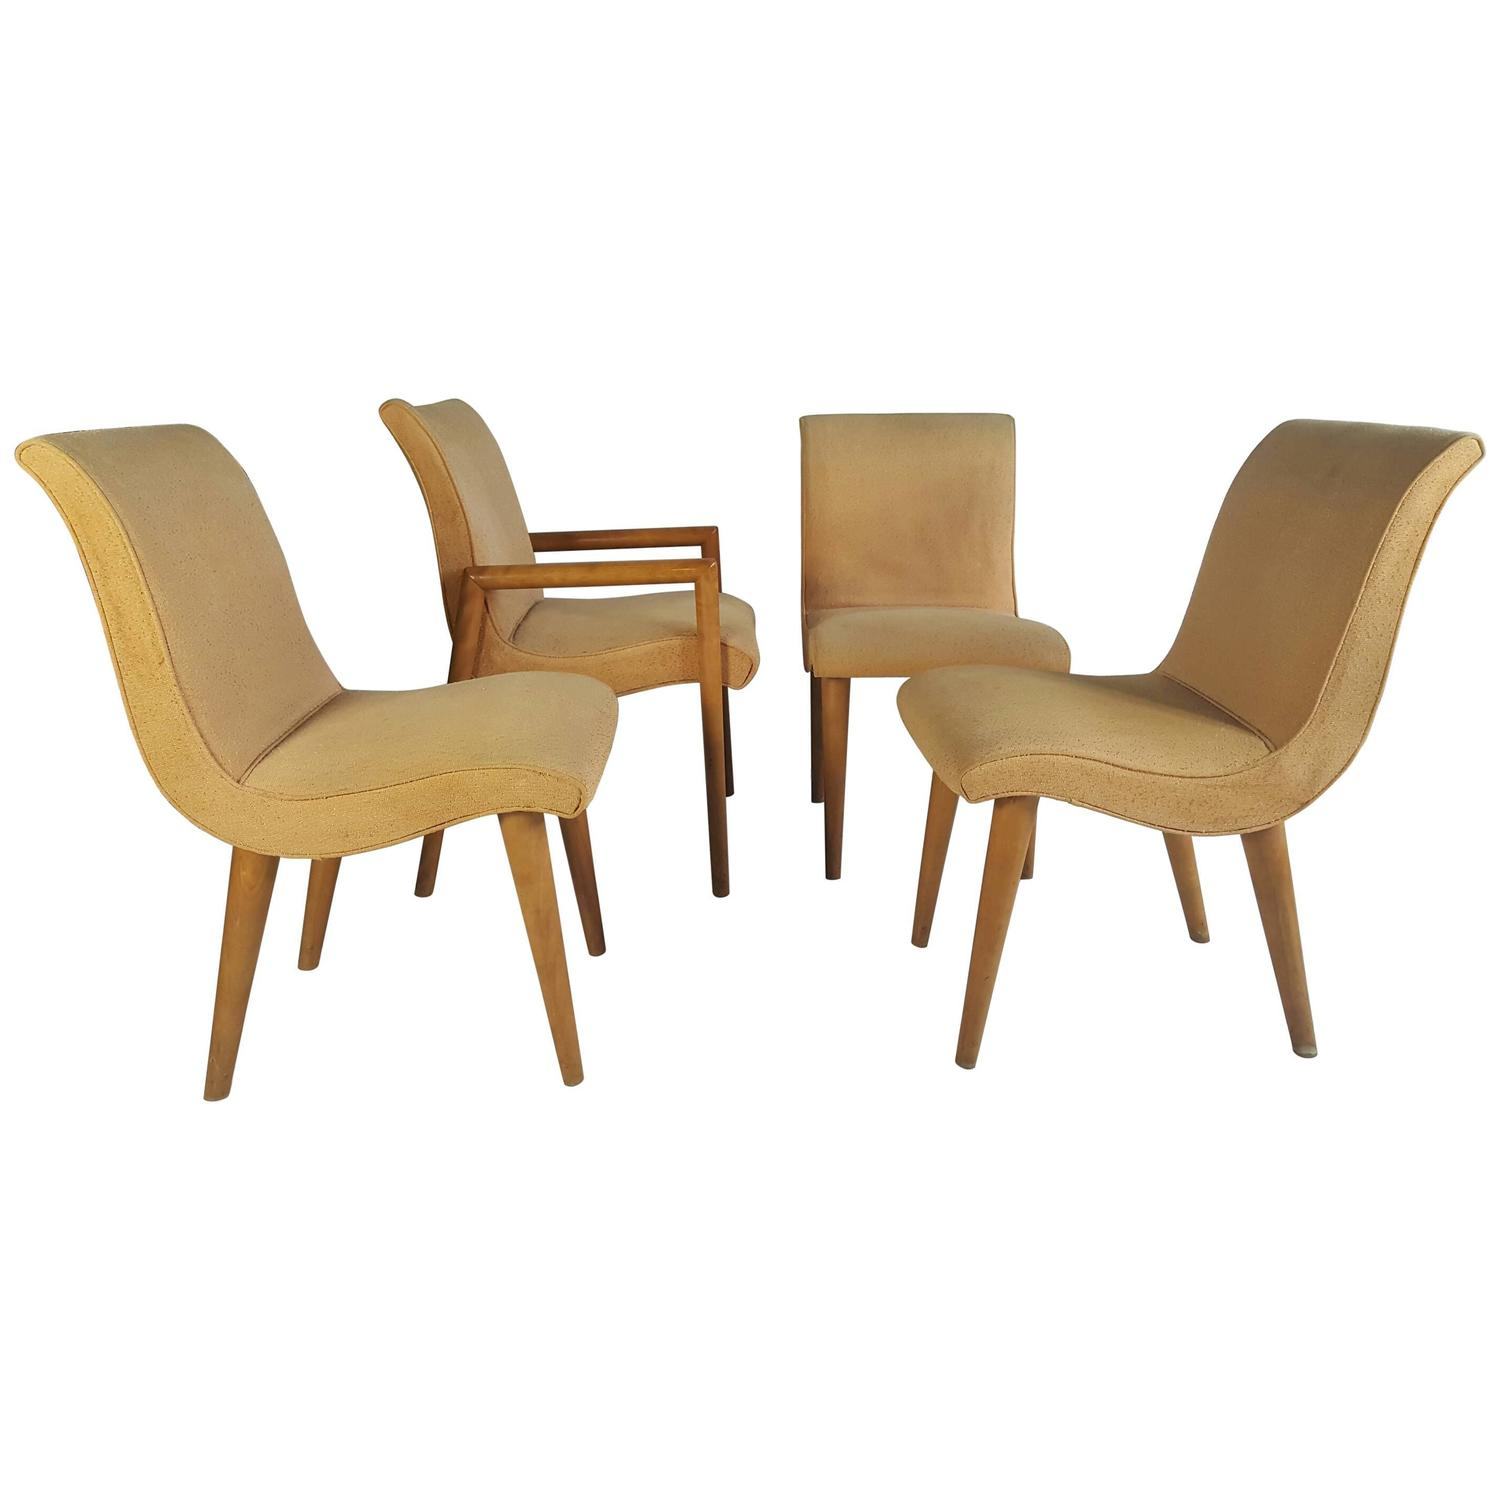 Set Of Four Russel Wright For Conant Ball Dining Chairs, Modernist At  1stdibs